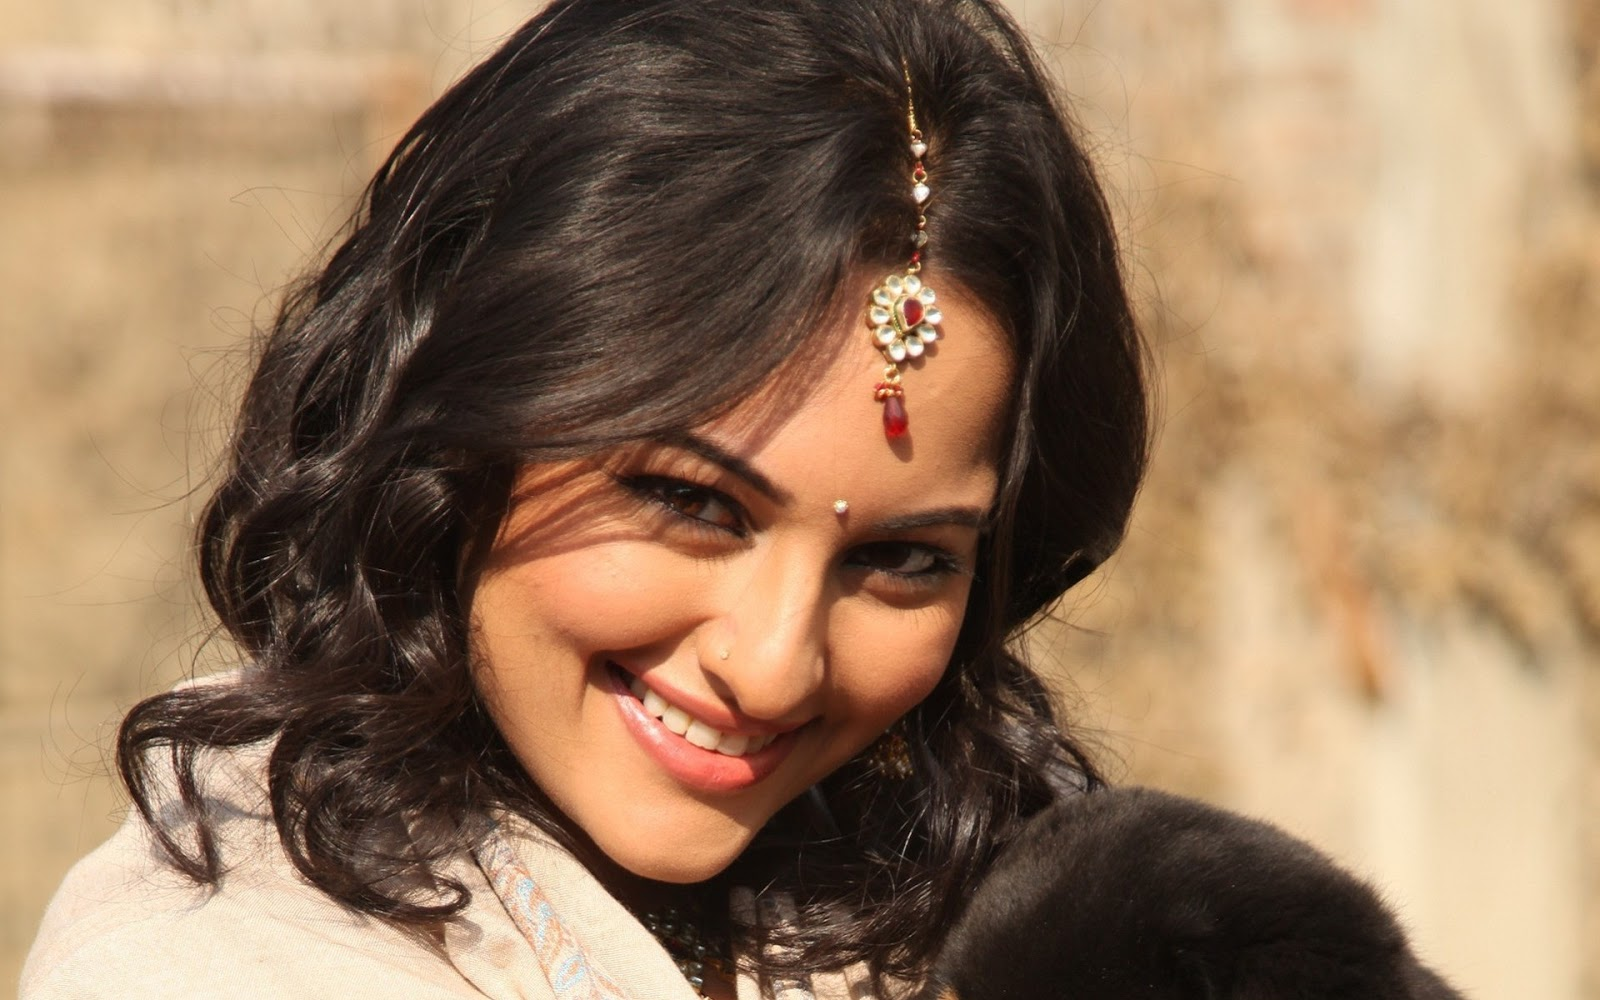 13 hd wallpapers of bollywood actress sonakshi sinha 2018 - ibutters